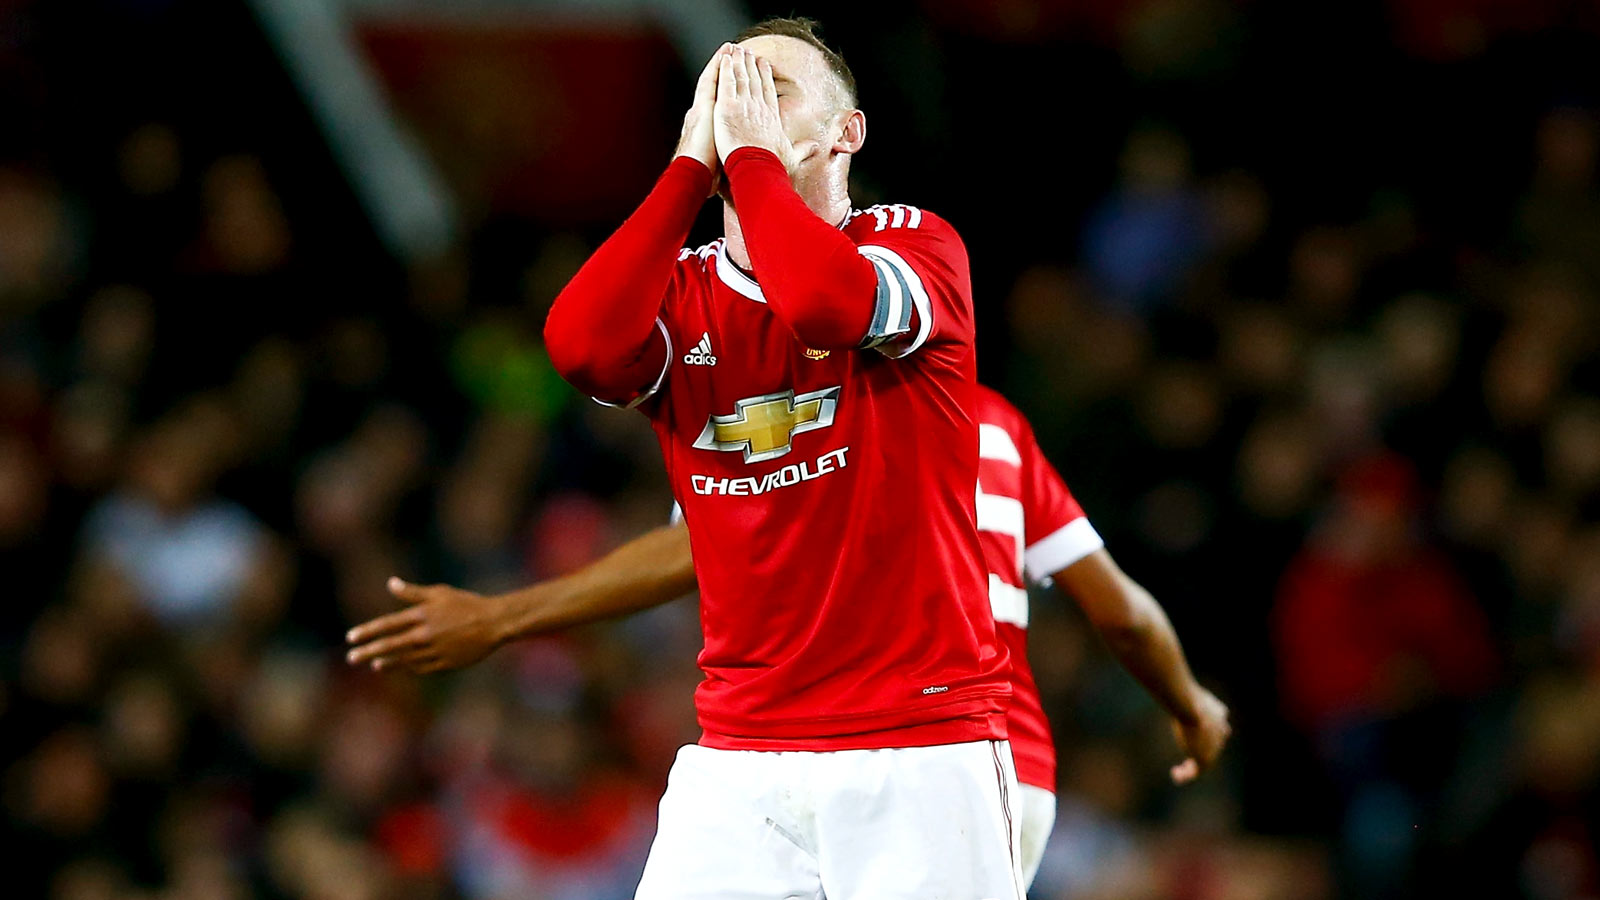 Man United crash out of League Cup in shootout loss vs. Boro